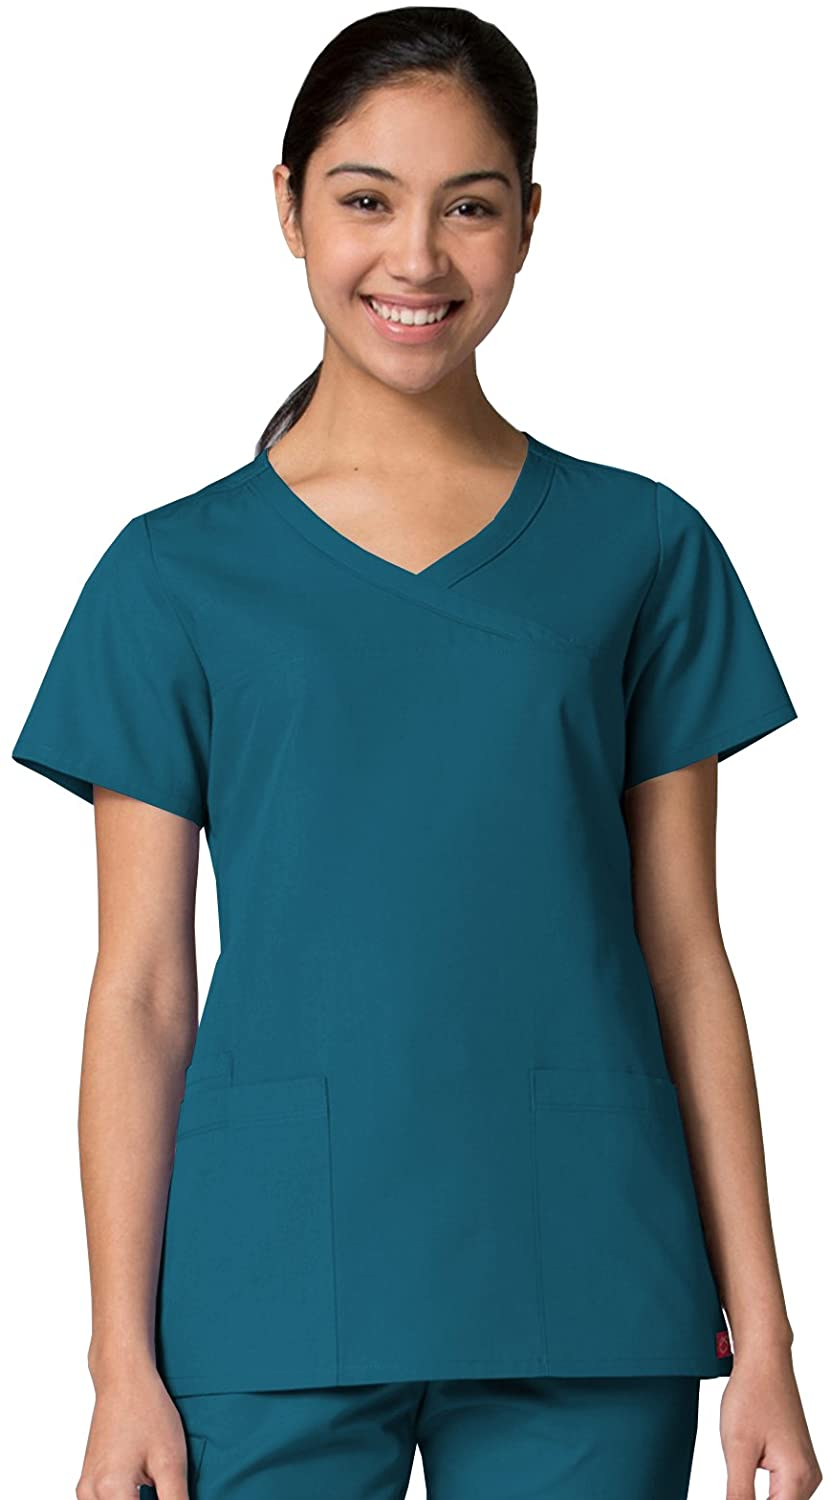 Red Panda Maevn Women's Curved Mock Wrap Top(Caribbean Blue, XXXXX-Large)